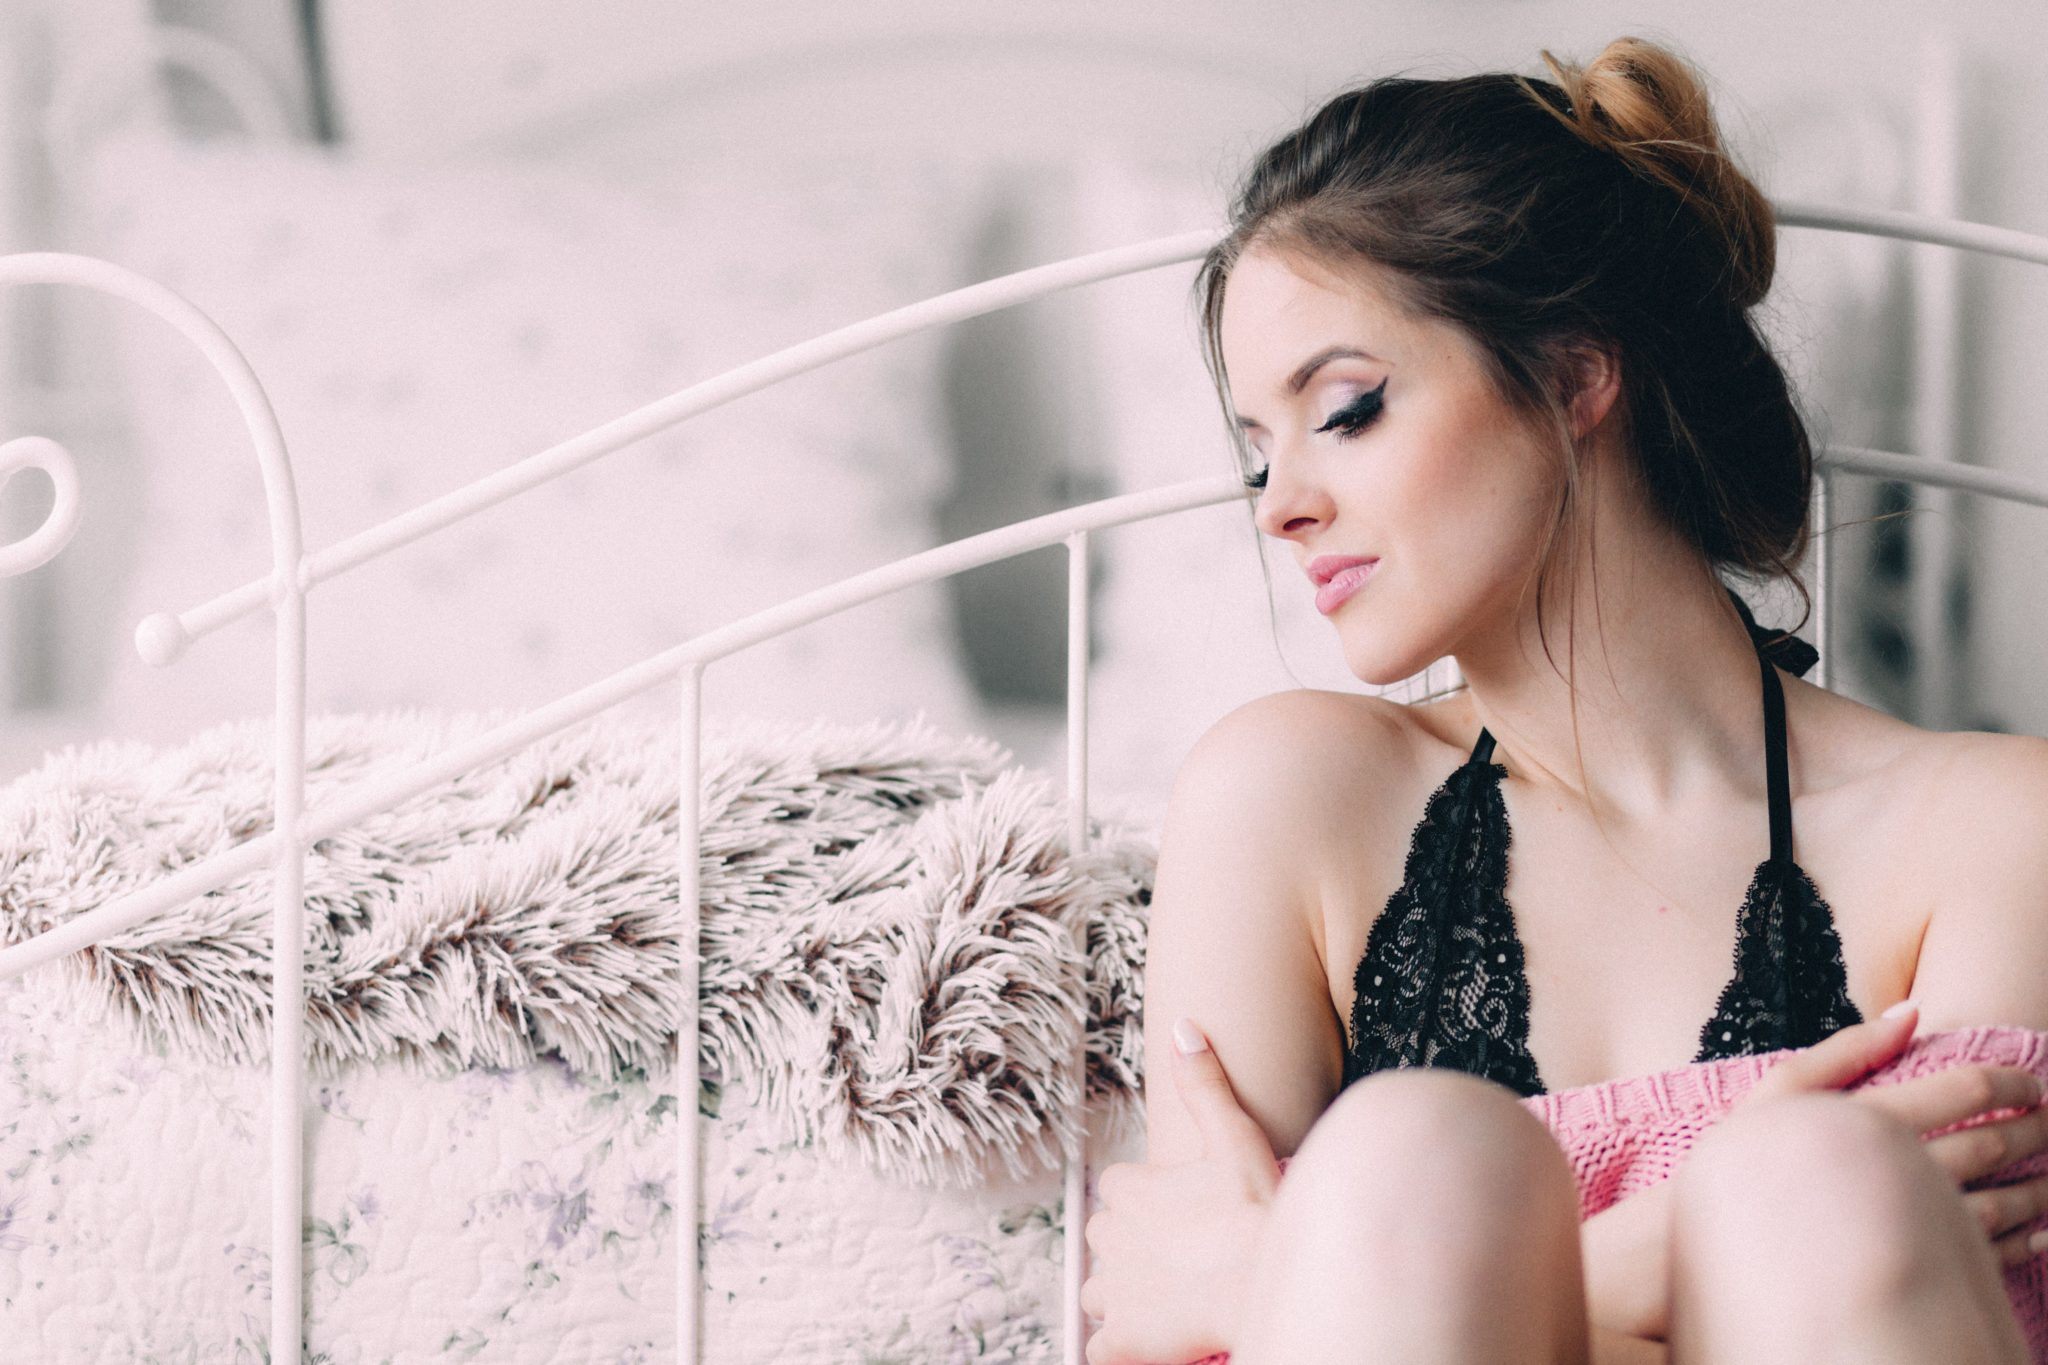 6 Reasons To Do A Boudoir Photo Shoot Before Your Wedding